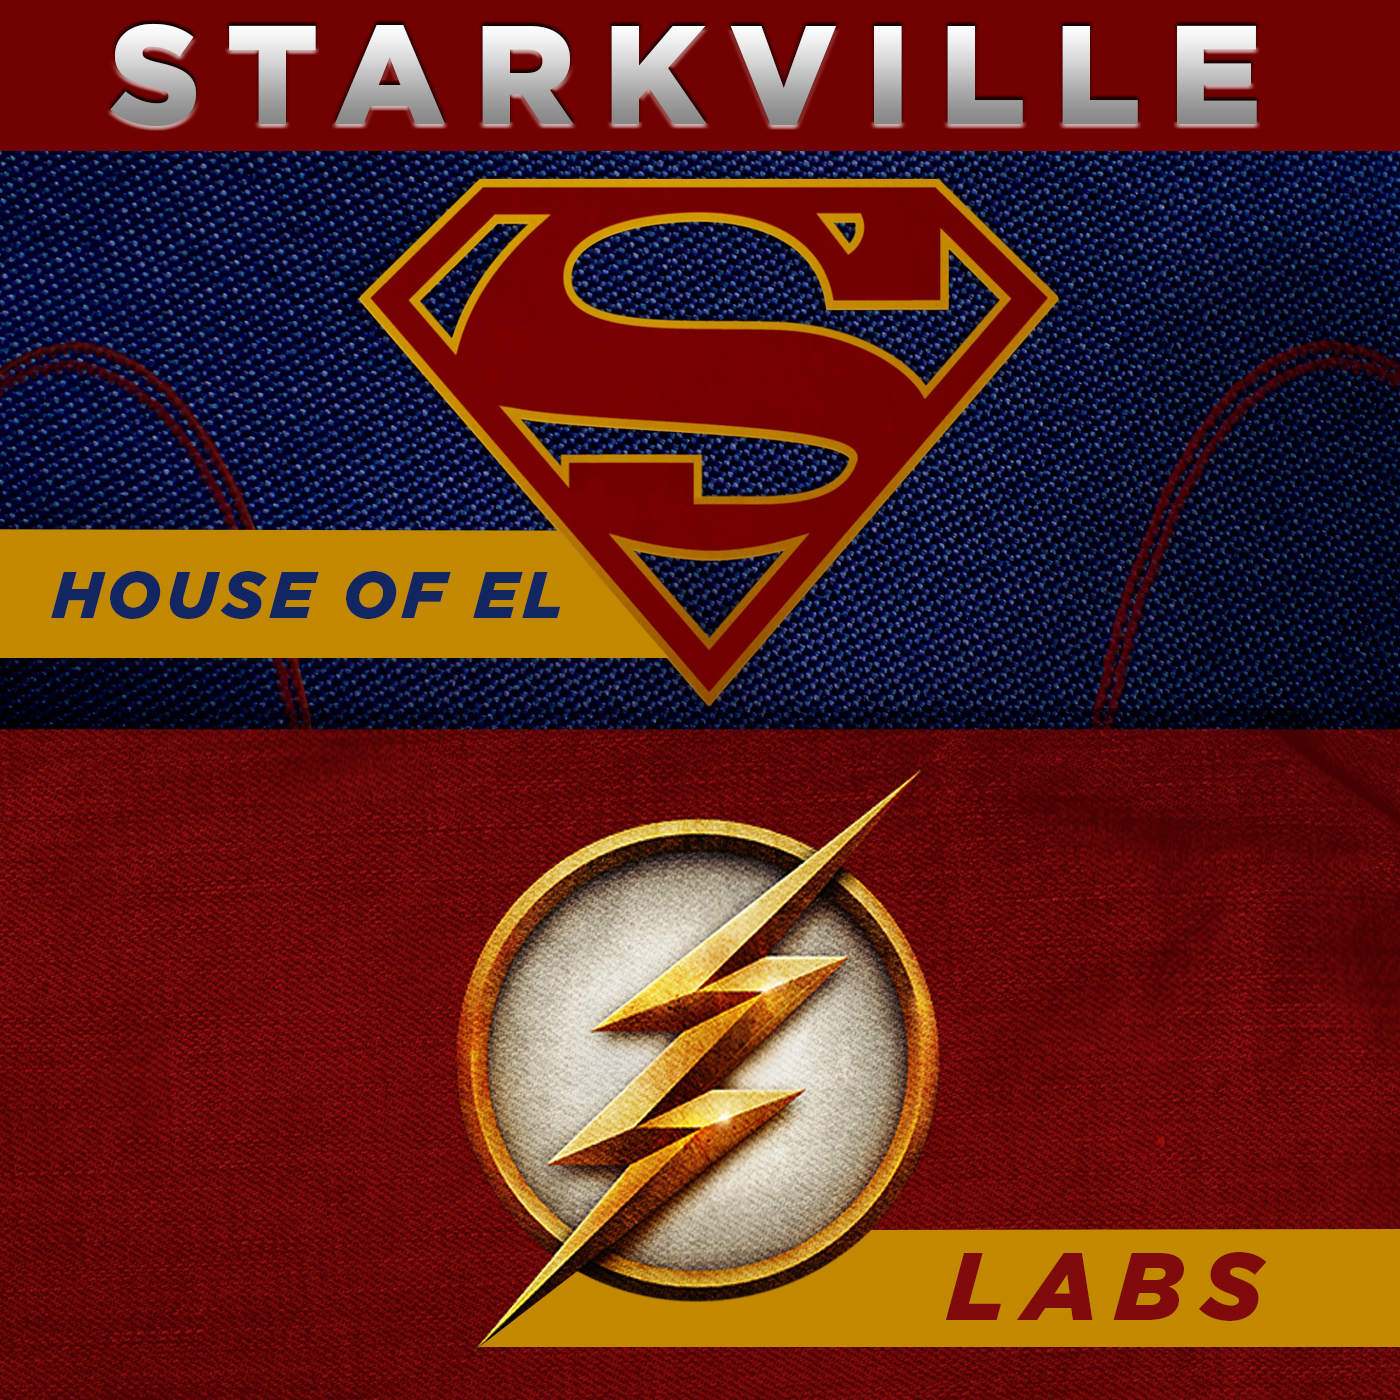 Starkville - Supergirl and The Flash